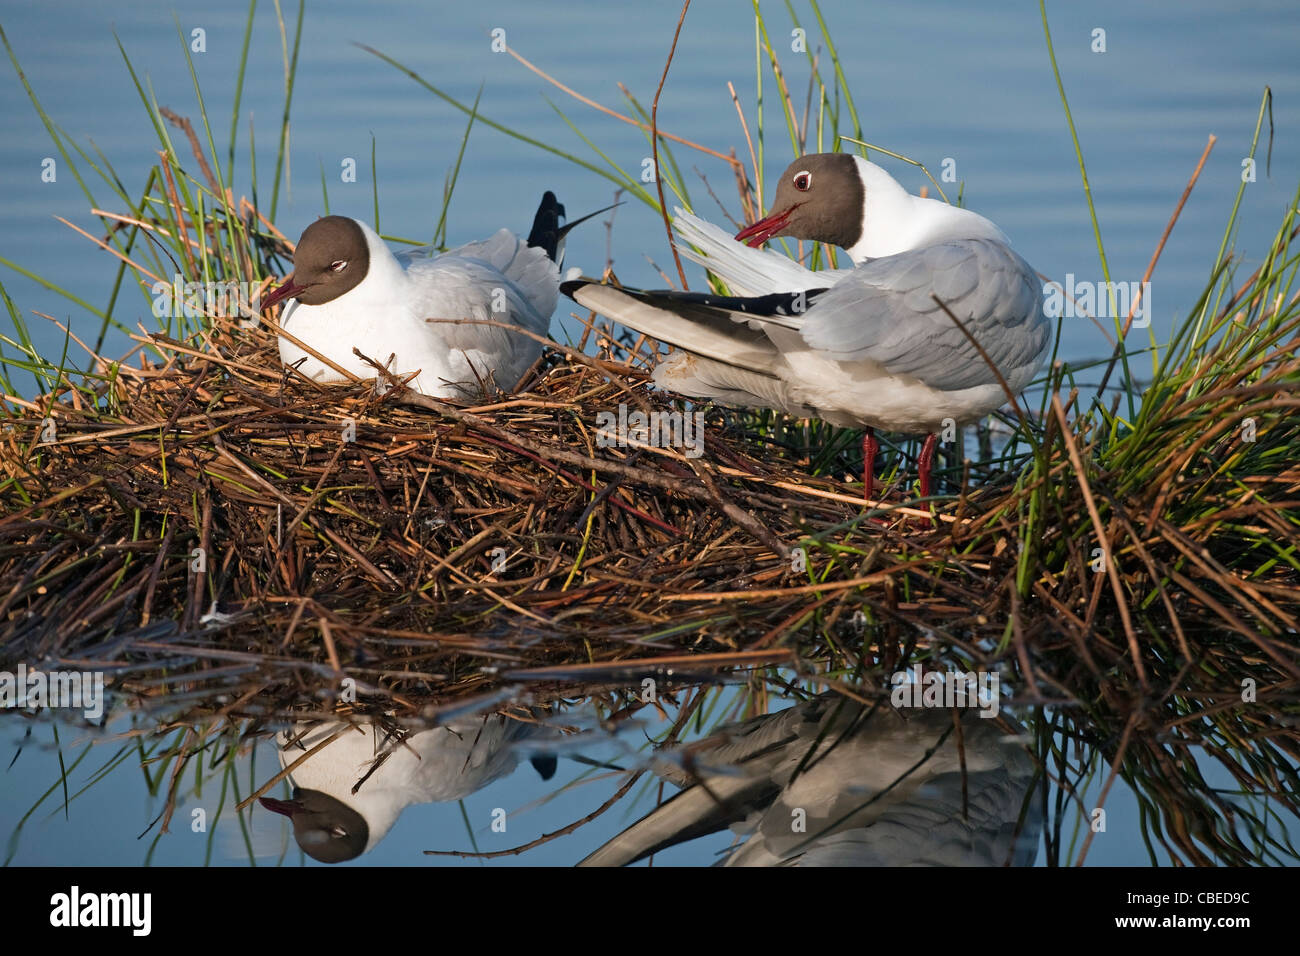 Black-headed Gull (Larus ridibundus), pair at nest. One sleeping, one preening. Grote peel National Park, Netherlands. - Stock Image